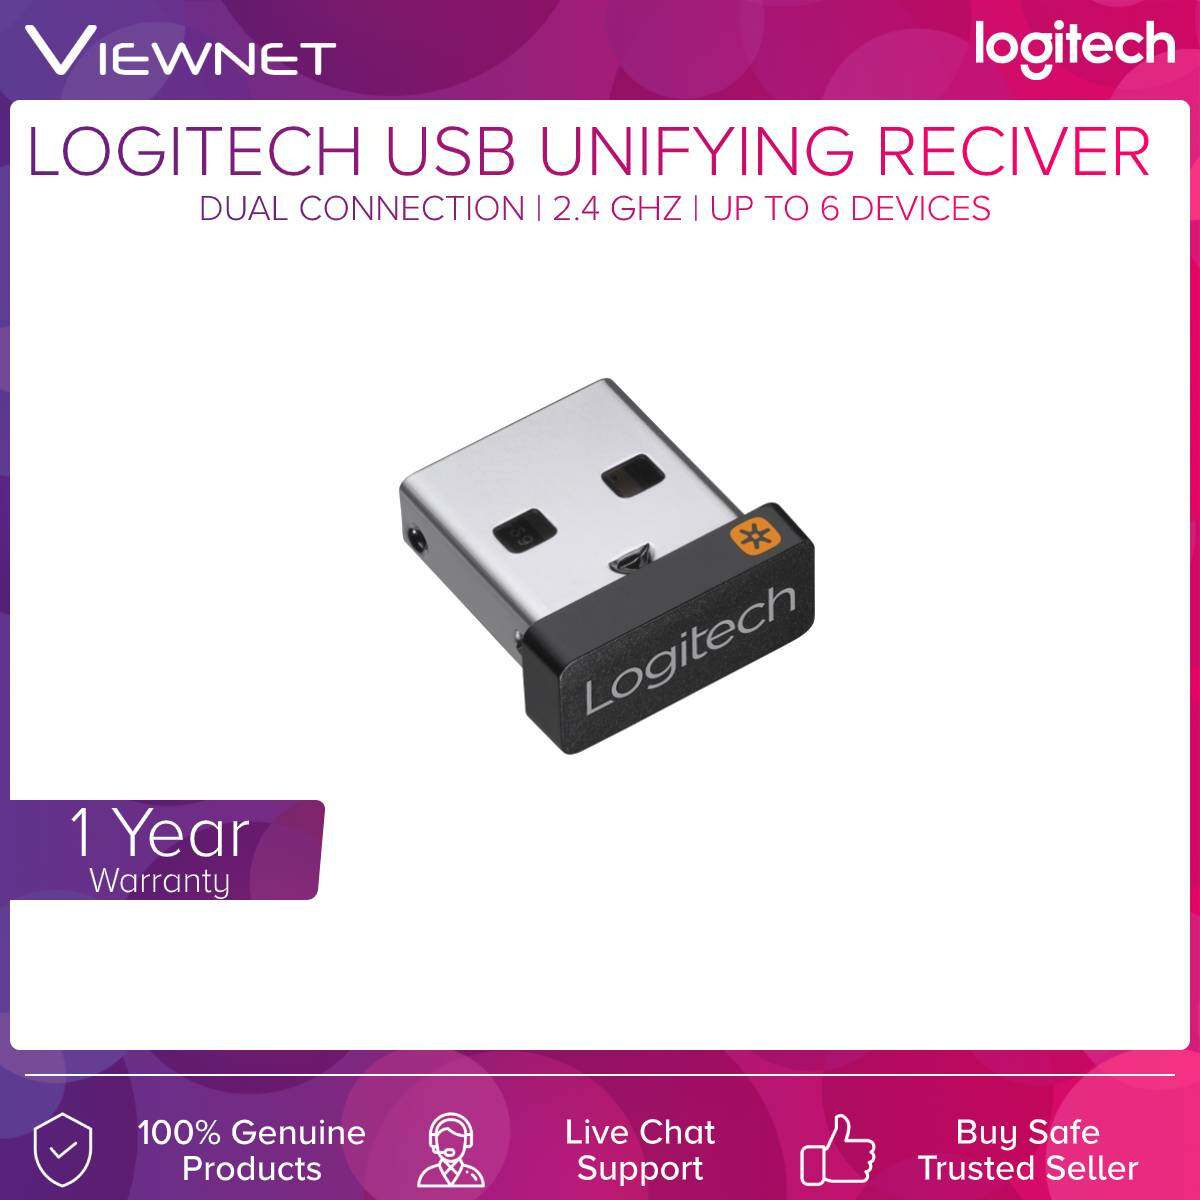 Logitech USB Unifying Receiver (910-005239), Black, Up to 6 Devices, 2.4GHz Wireless Technology, Dual Connectivity